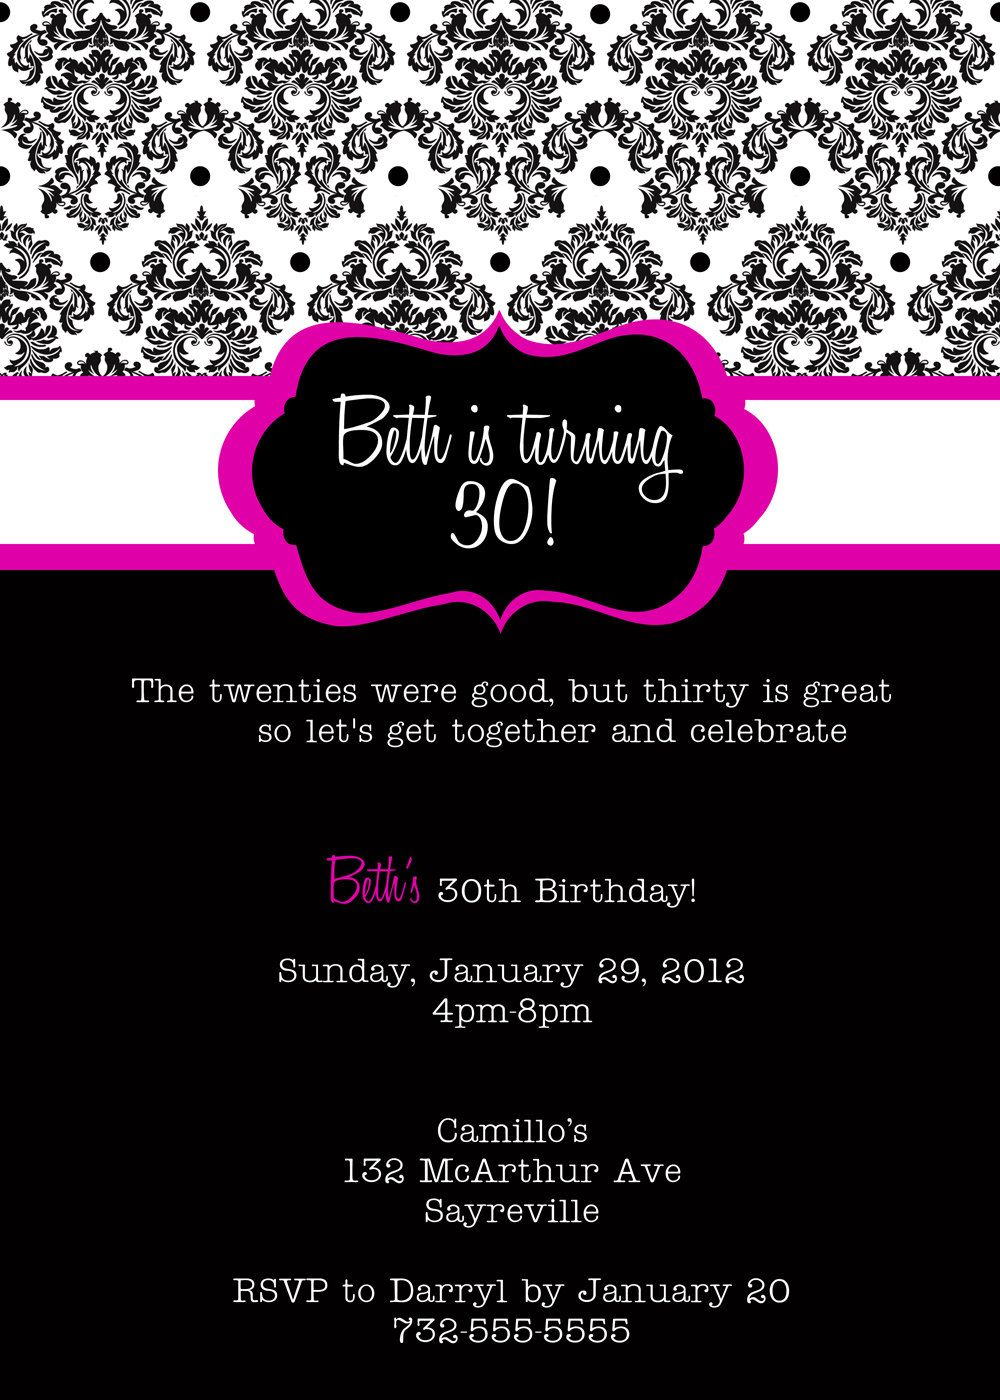 30th Birthday Invitations Printable | 30 is Coming | Pinterest ...